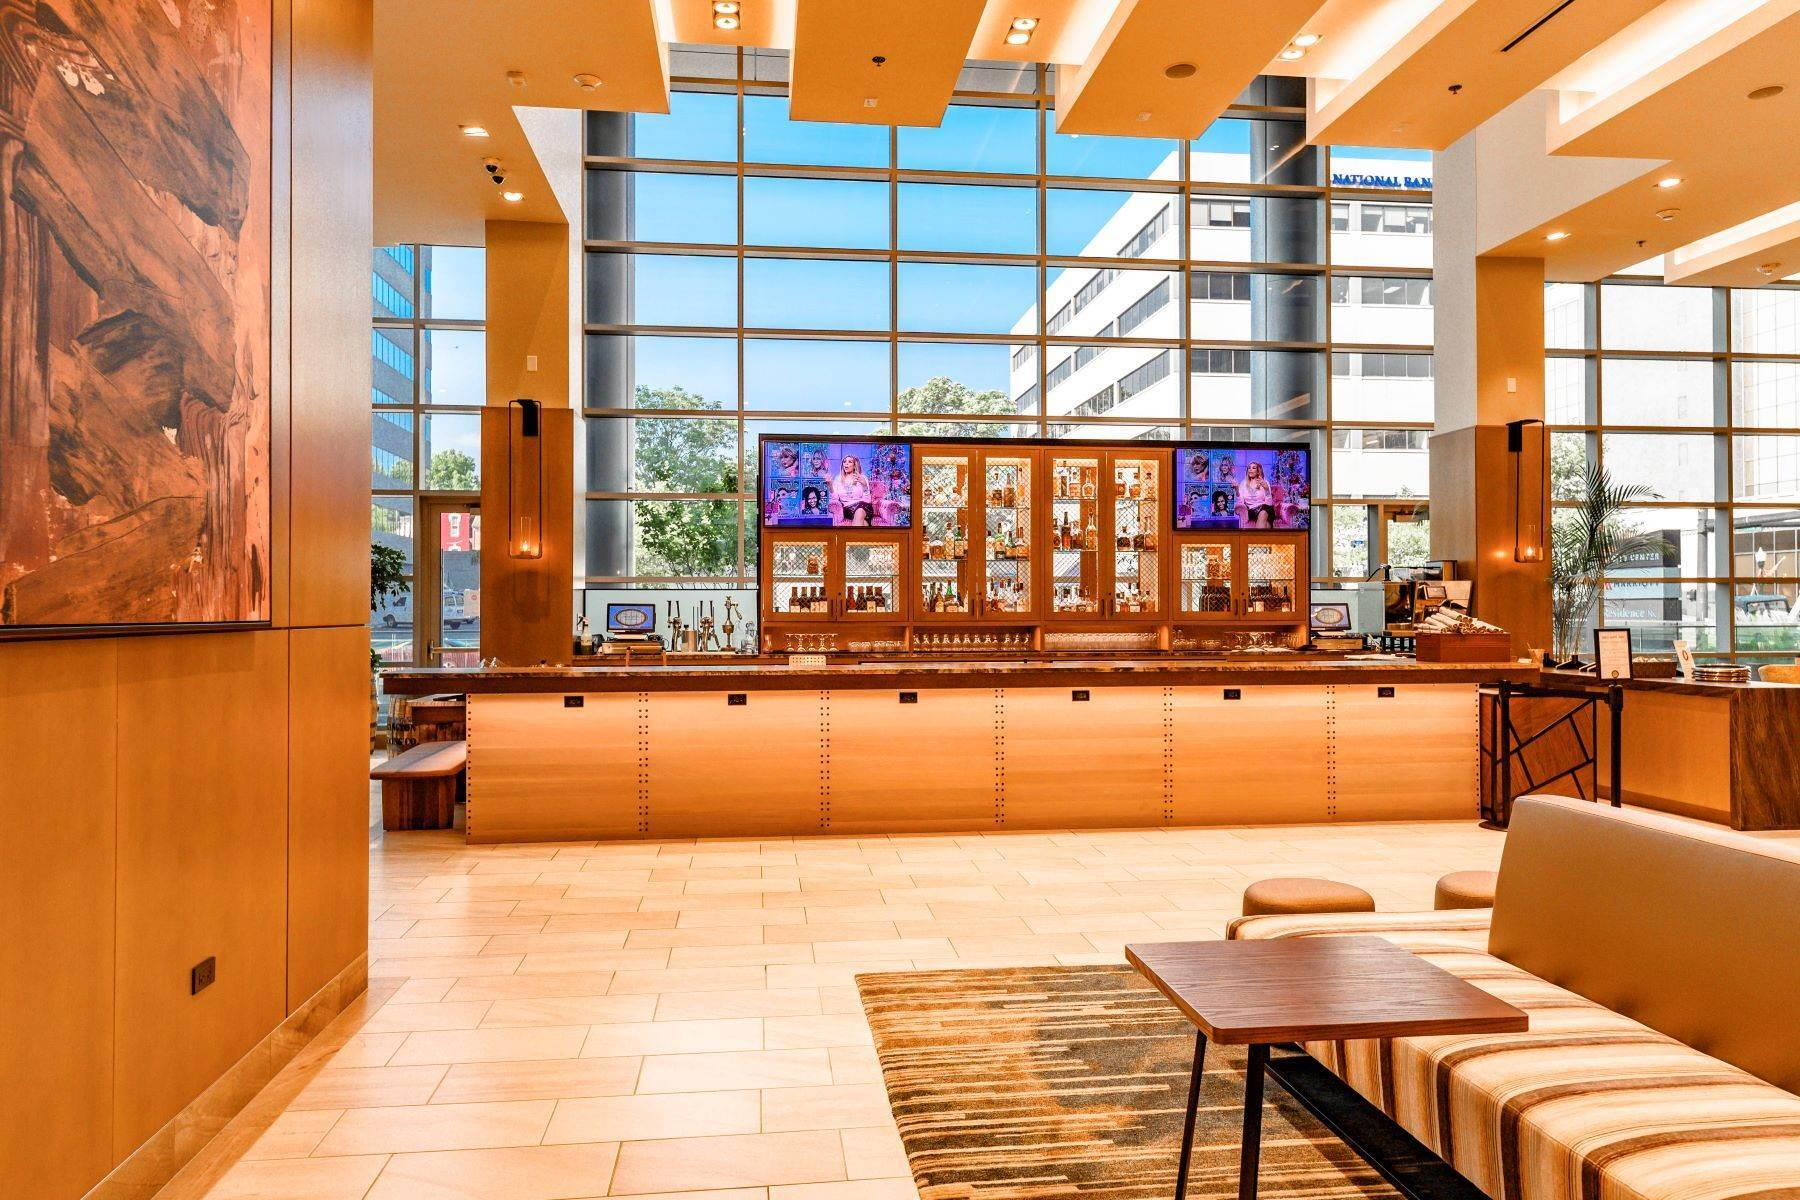 10. Condominiums for Sale at The Penthouses at City Center 103 S Limestone #1220 Lexington, Kentucky 40507 United States